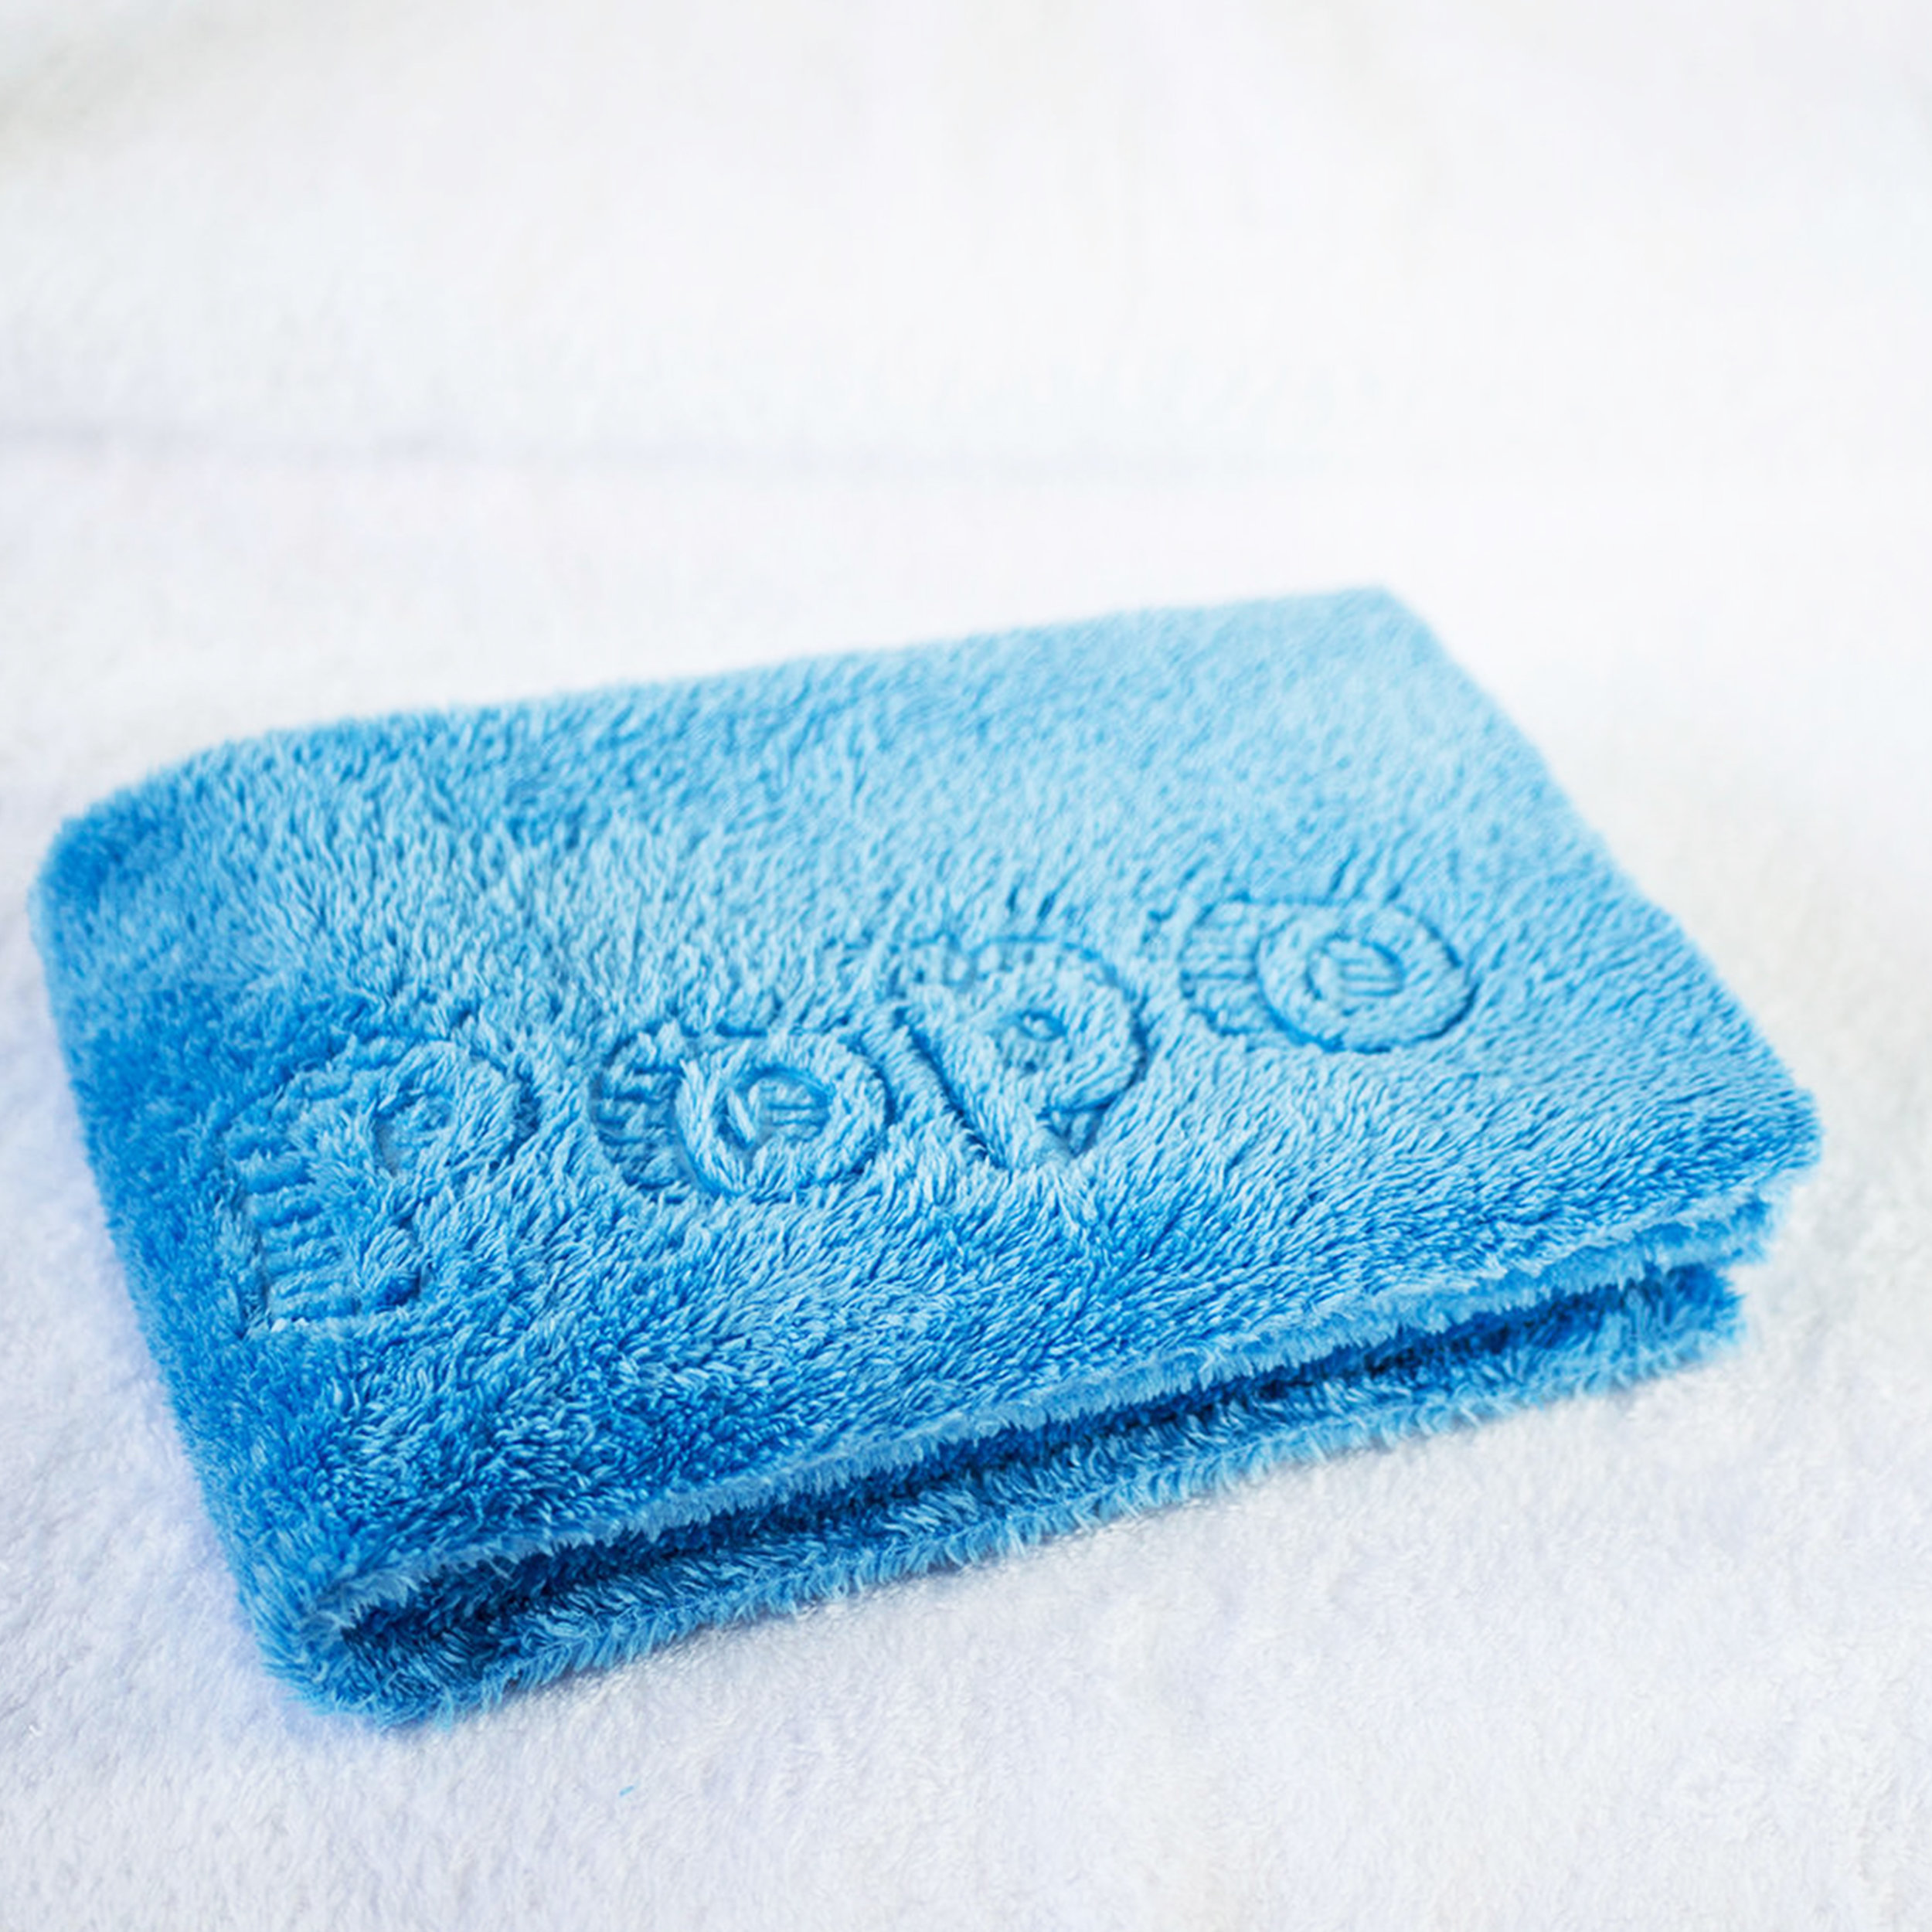 Detail-popo-350gsm-edgeless-free-towel.jpg